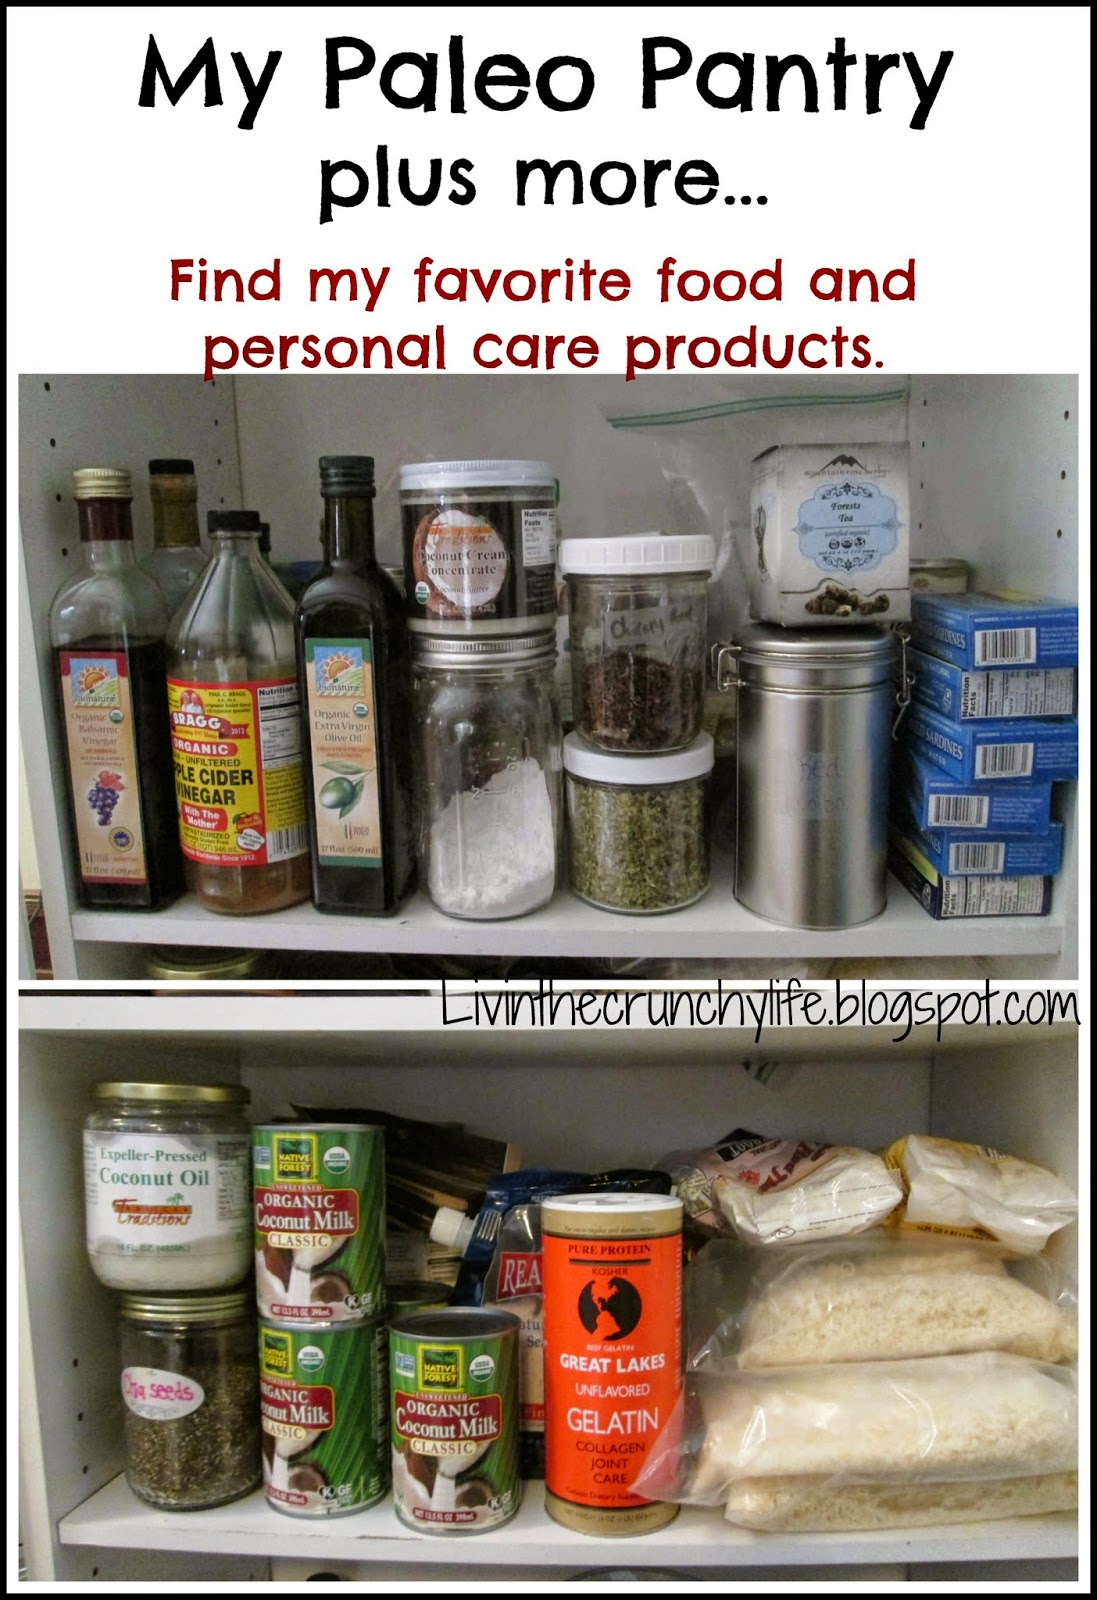 My Paleo Pantry plus more...Find my favorite food and natural care products.